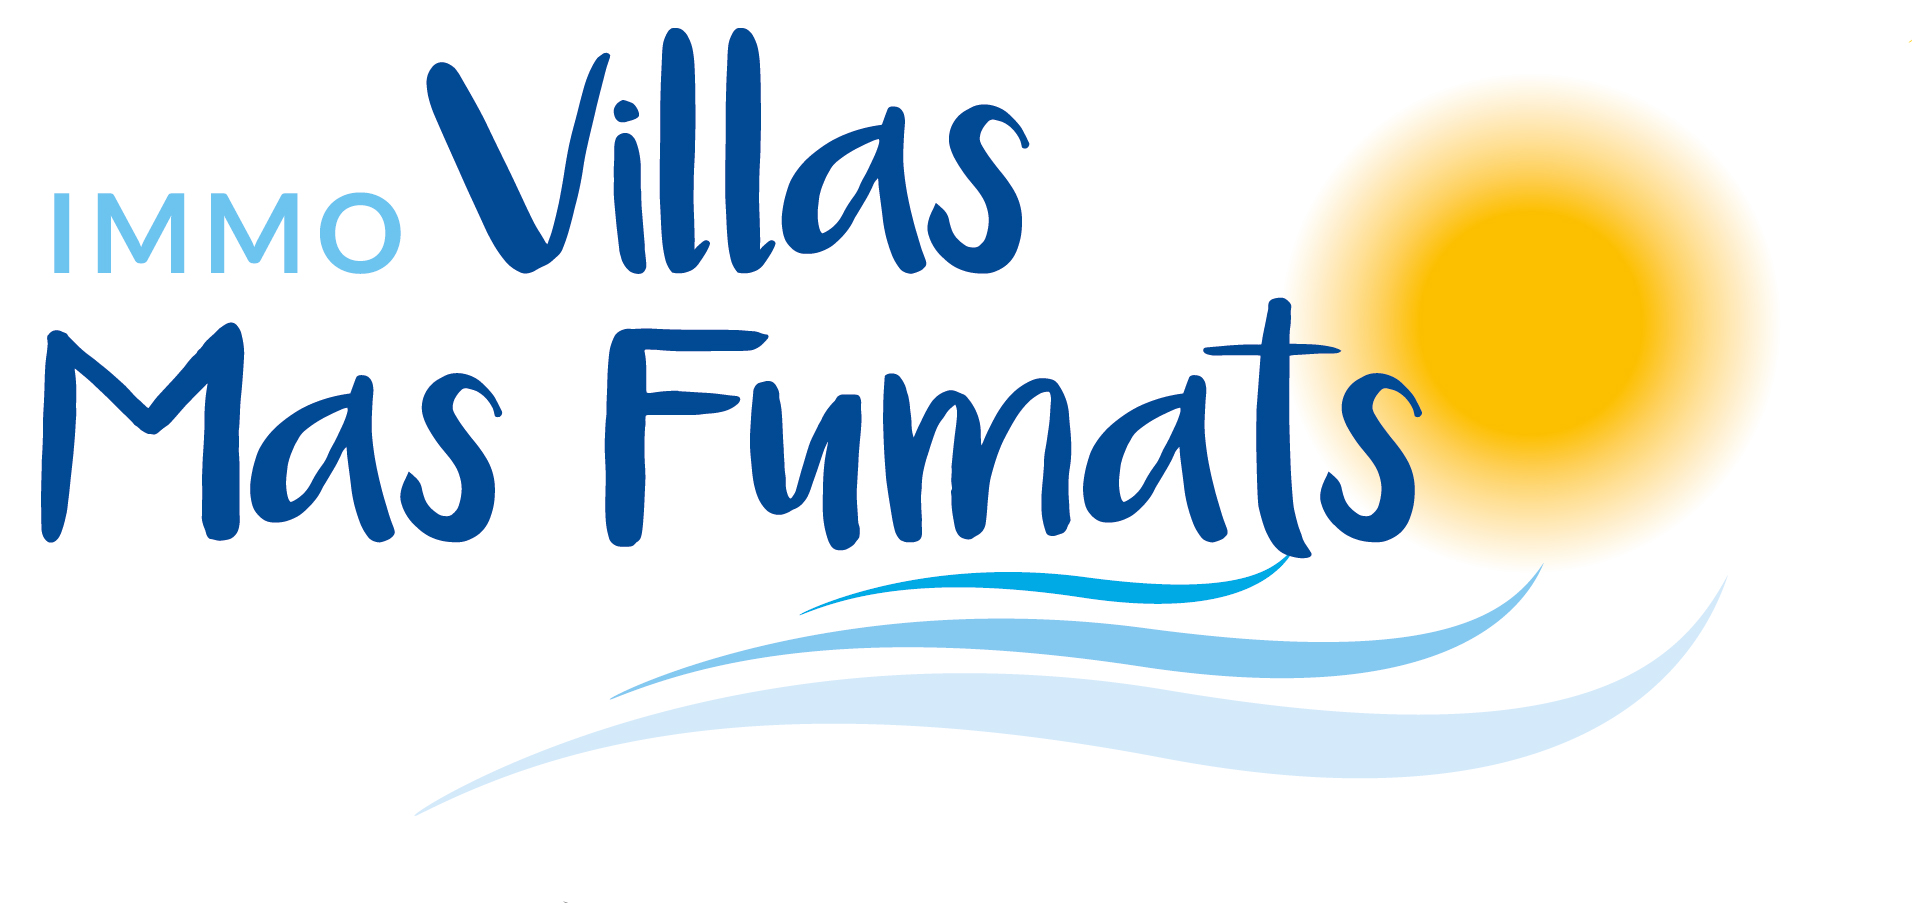 Real Estate Immo Villas Mas Fumats - Property management in the Costa Brava